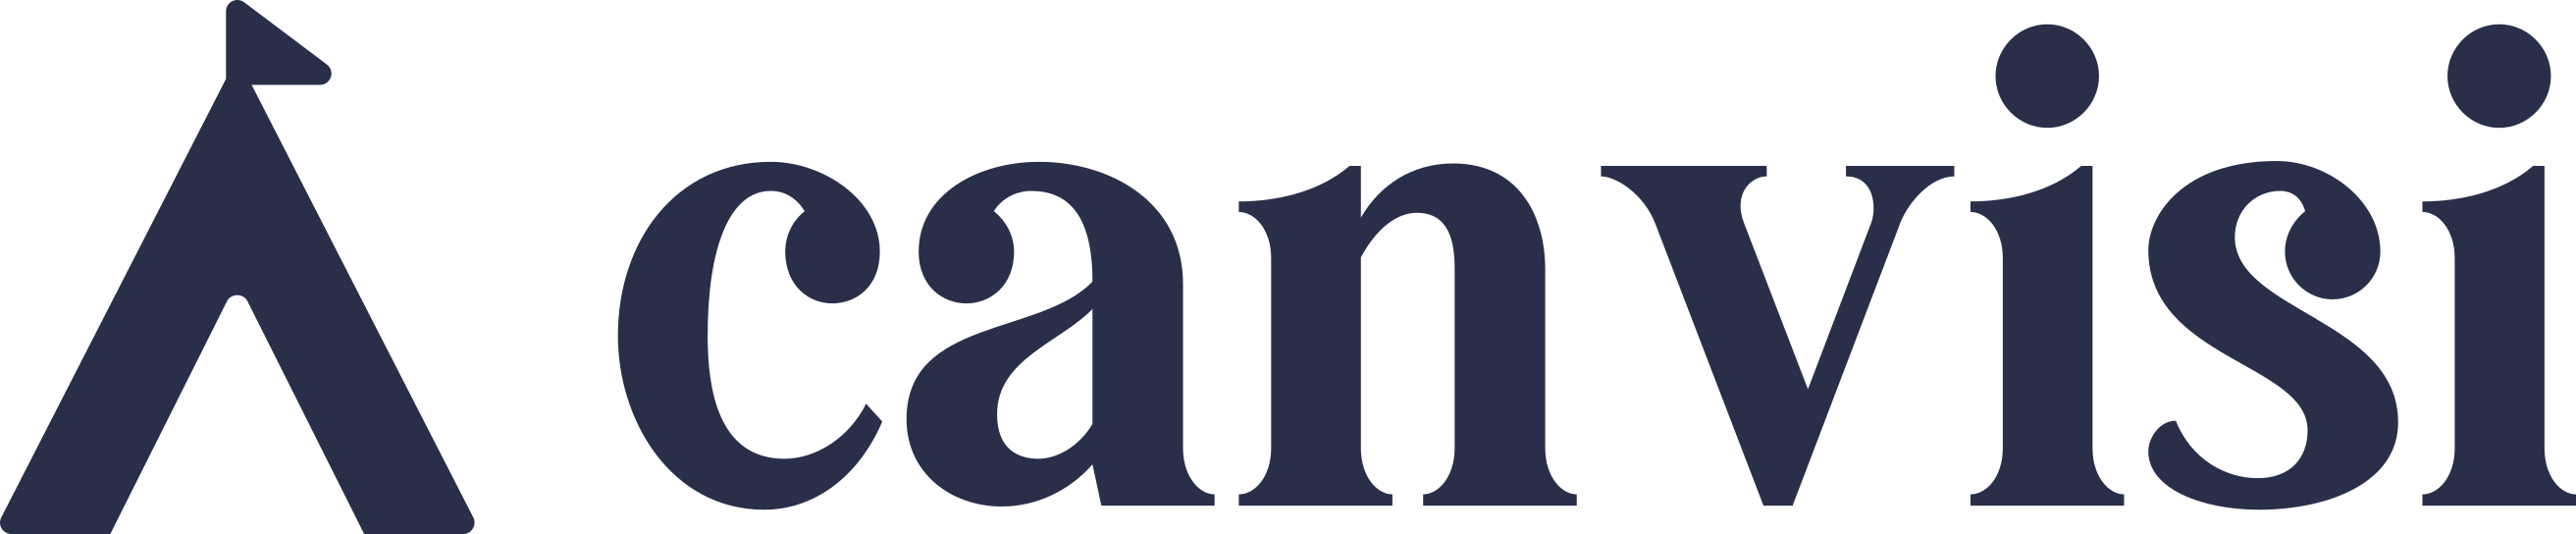 Canvisi logo